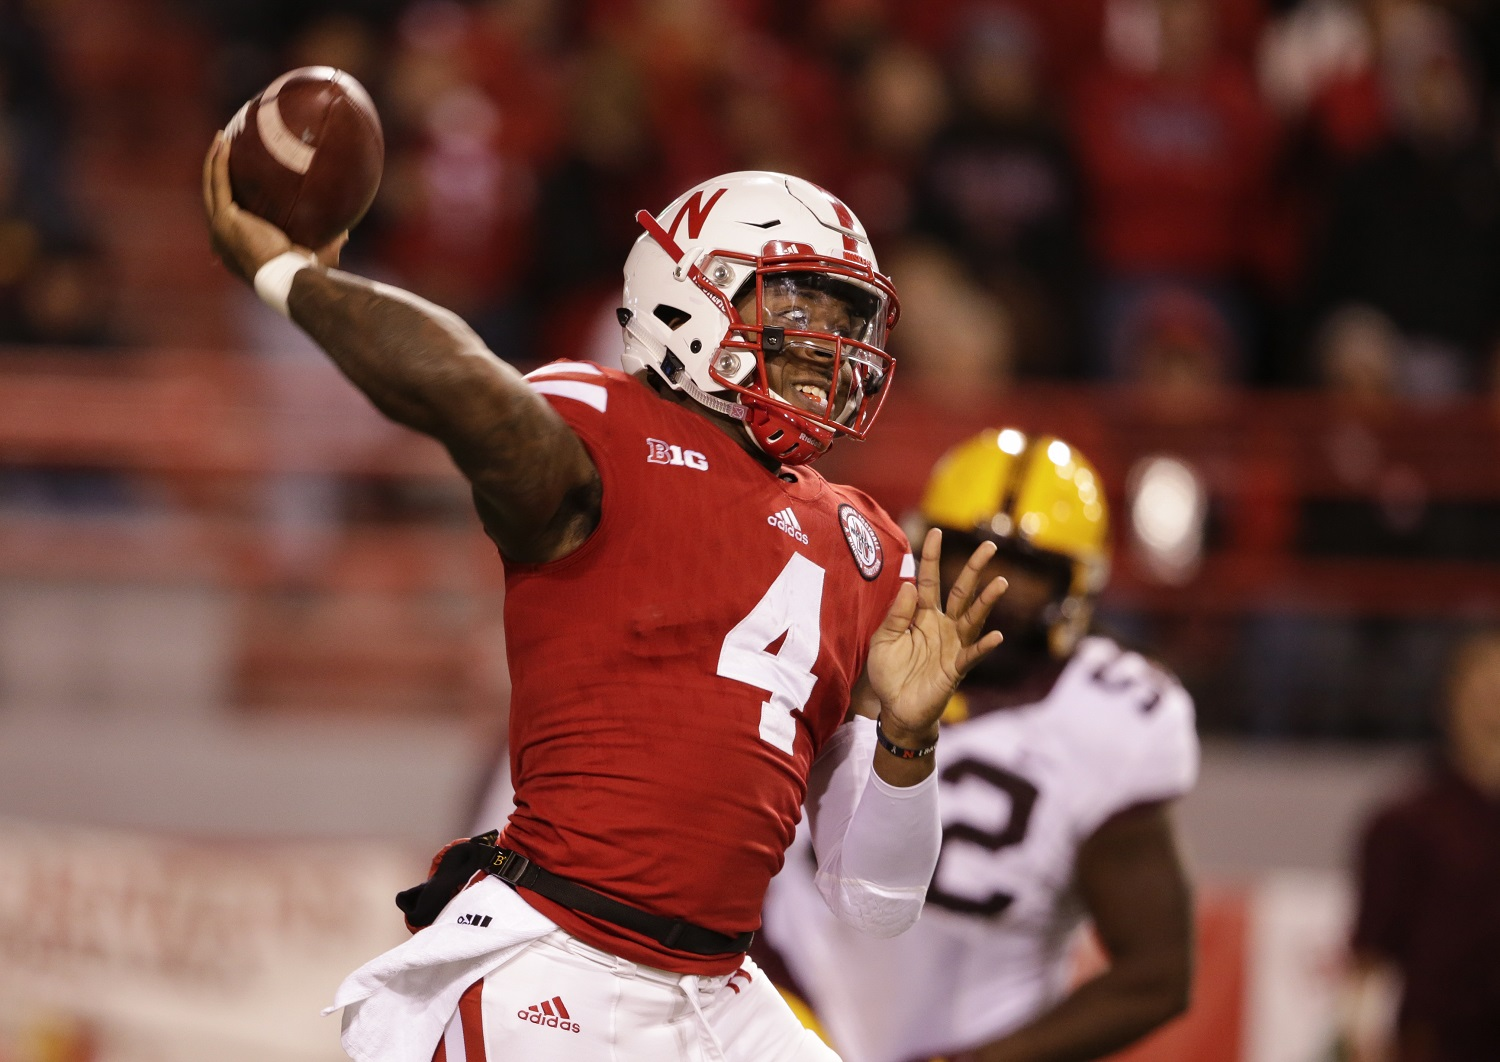 Nebraska quarterback Tommy Armstrong Jr. (4) throws in front of Minnesota defensive lineman Yoshoub Timms (52) during the second half of an NCAA college football game in Lincoln, Neb., Saturday, Nov. 12, 2016. Nebraska won 24-17. (AP Photo/Nati Harnik)